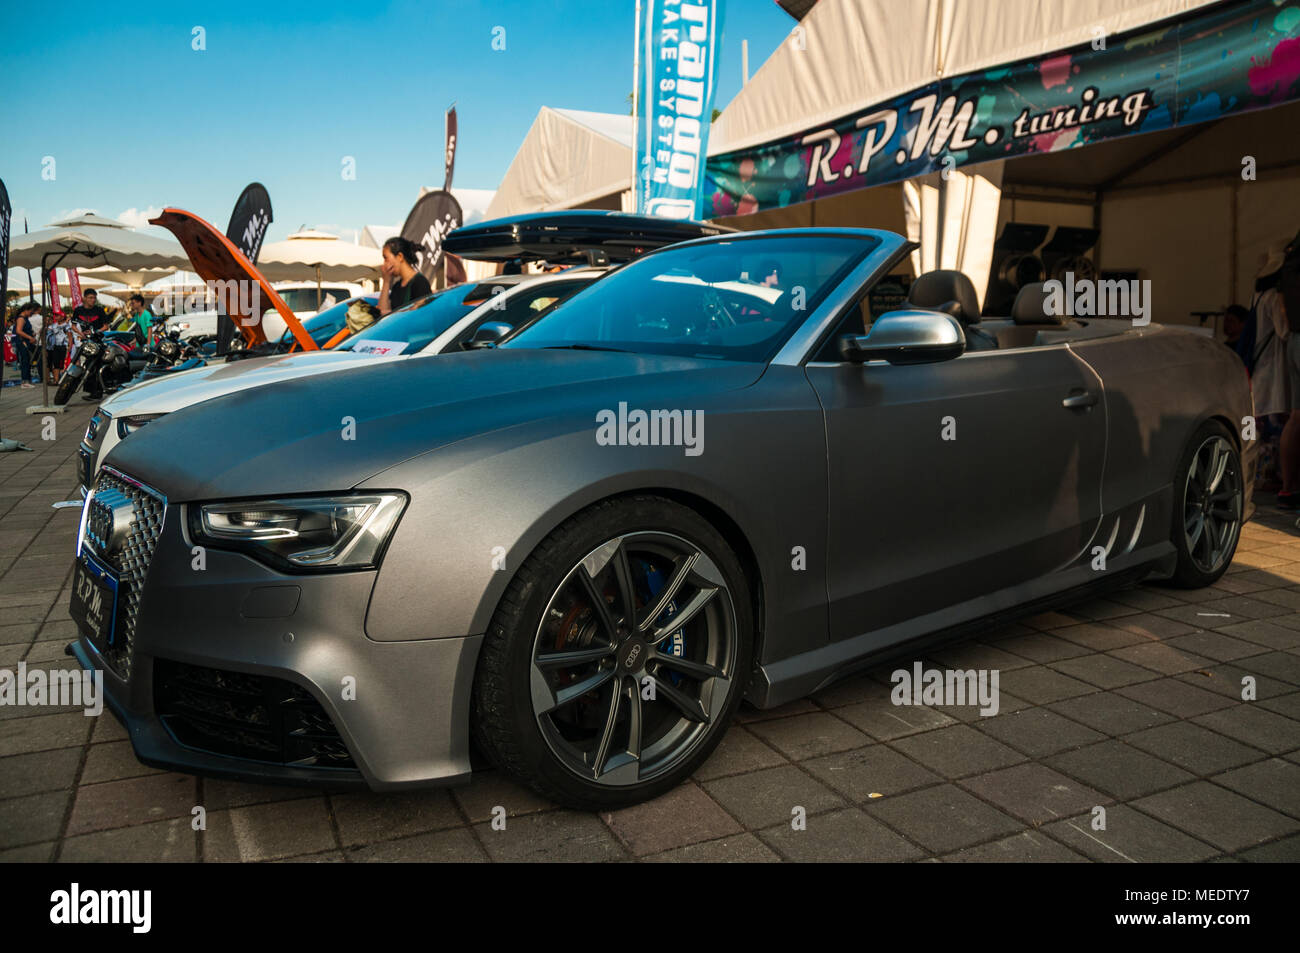 An Audi A5 convertible heads up a line of tuned Audis displayed by RPM Tuning at an Audi Sport event at the Shanghai International Circuit. - Stock Image